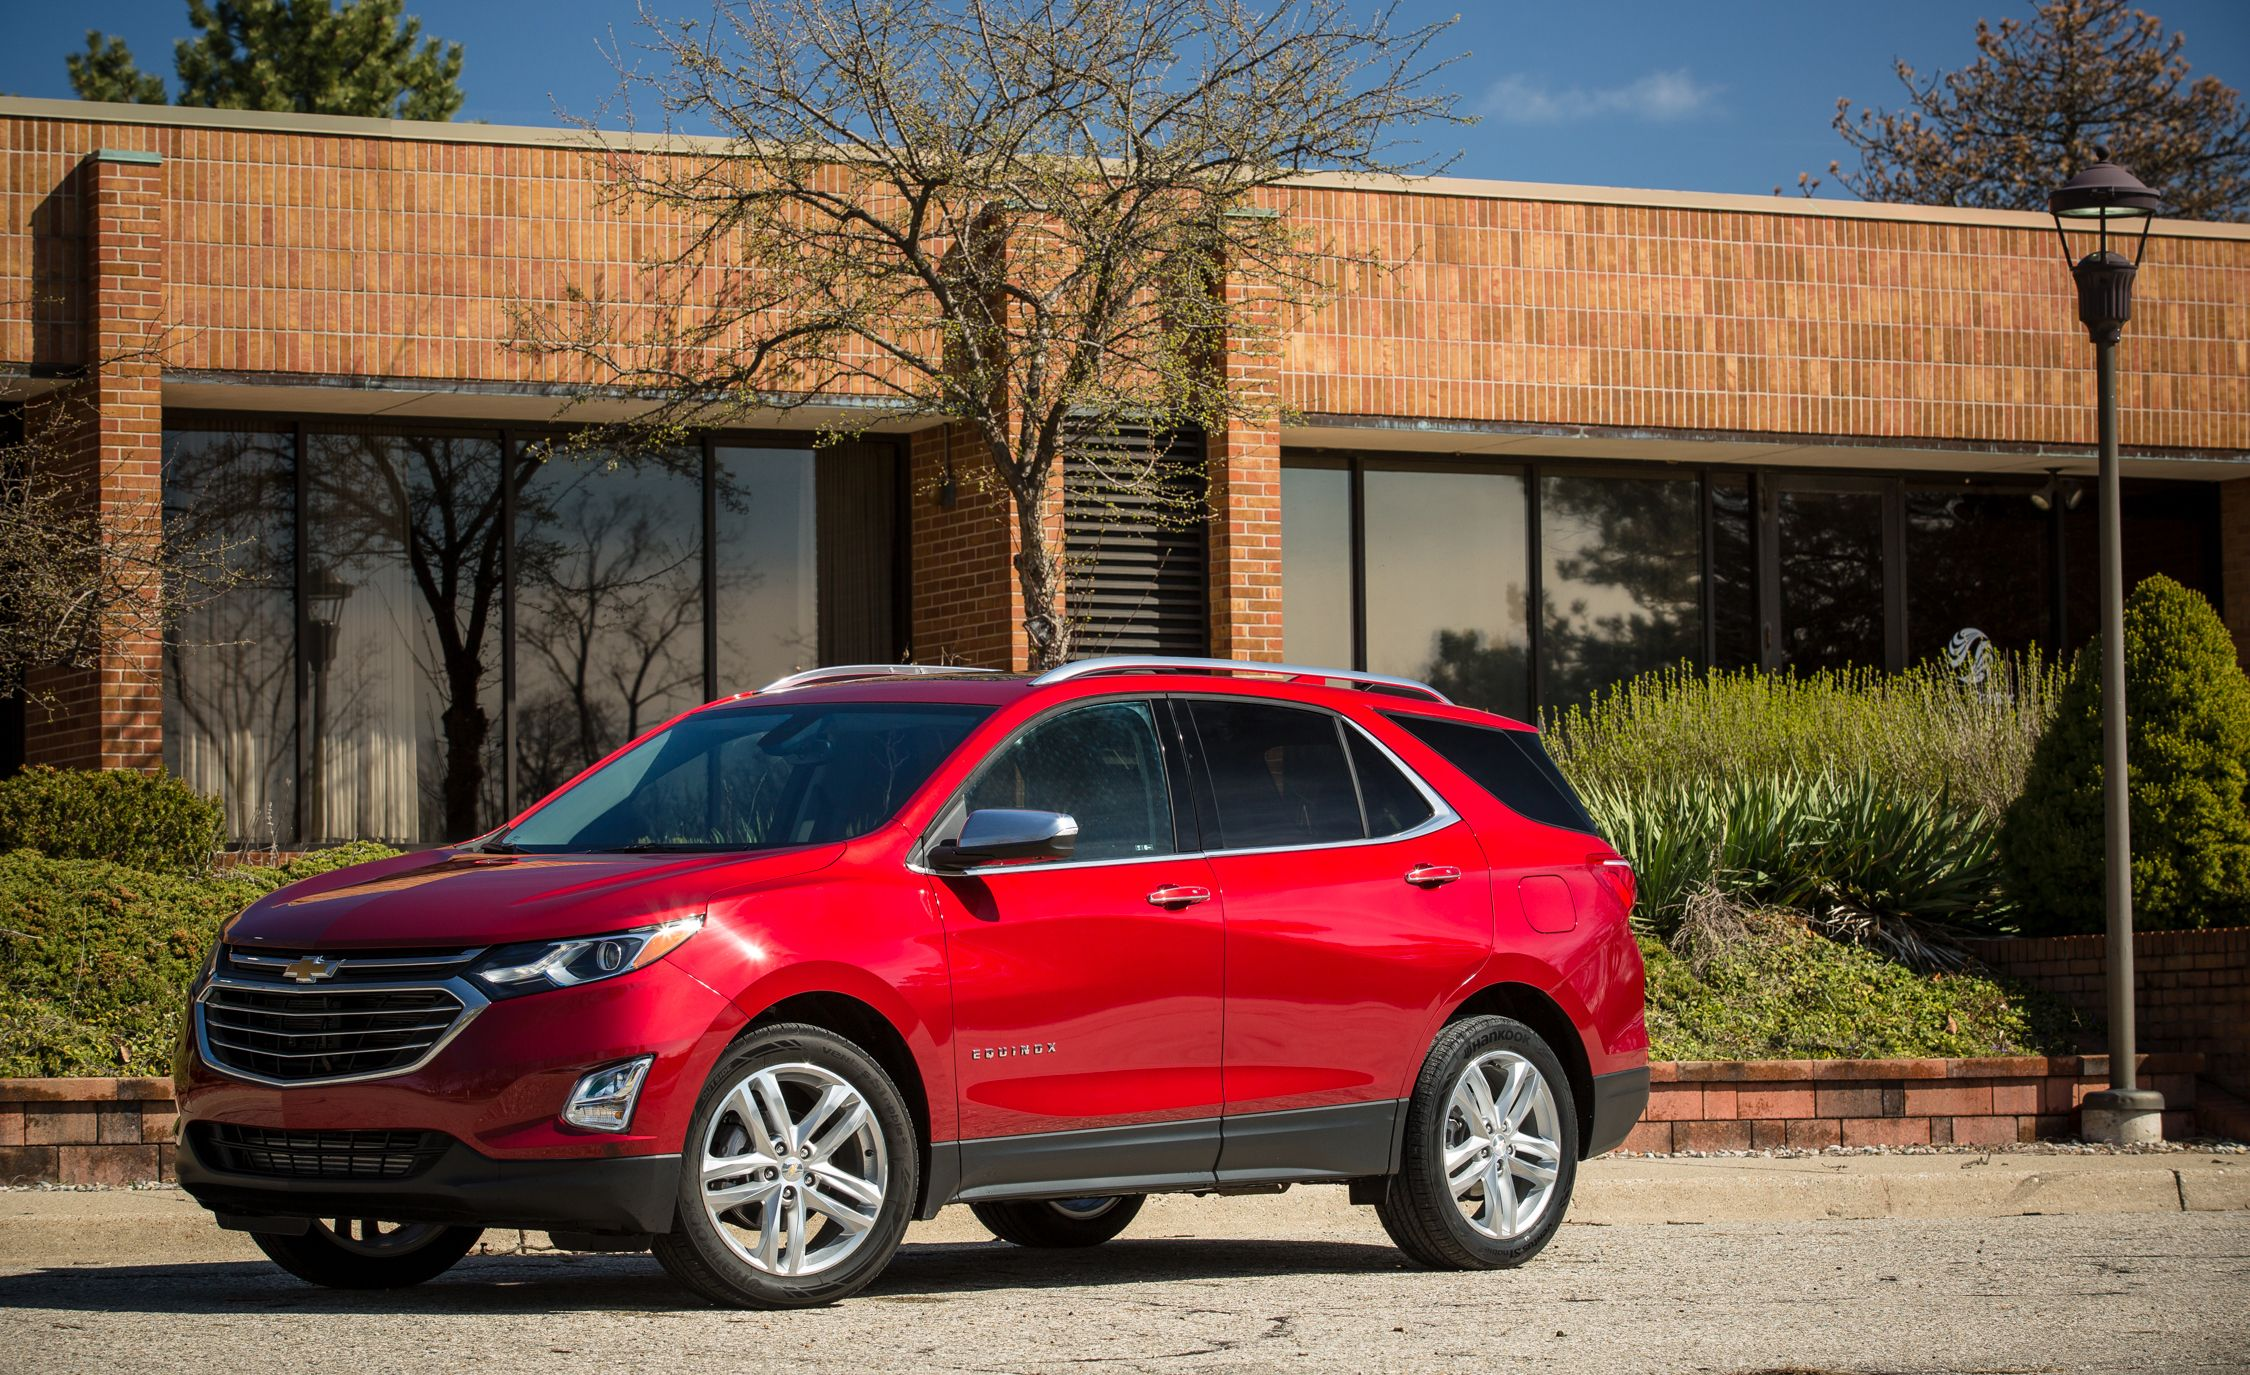 Chevy Equinox 3 4 Liter Engine Diagram 2018 Chevrolet Awd Test Review Car And Driver